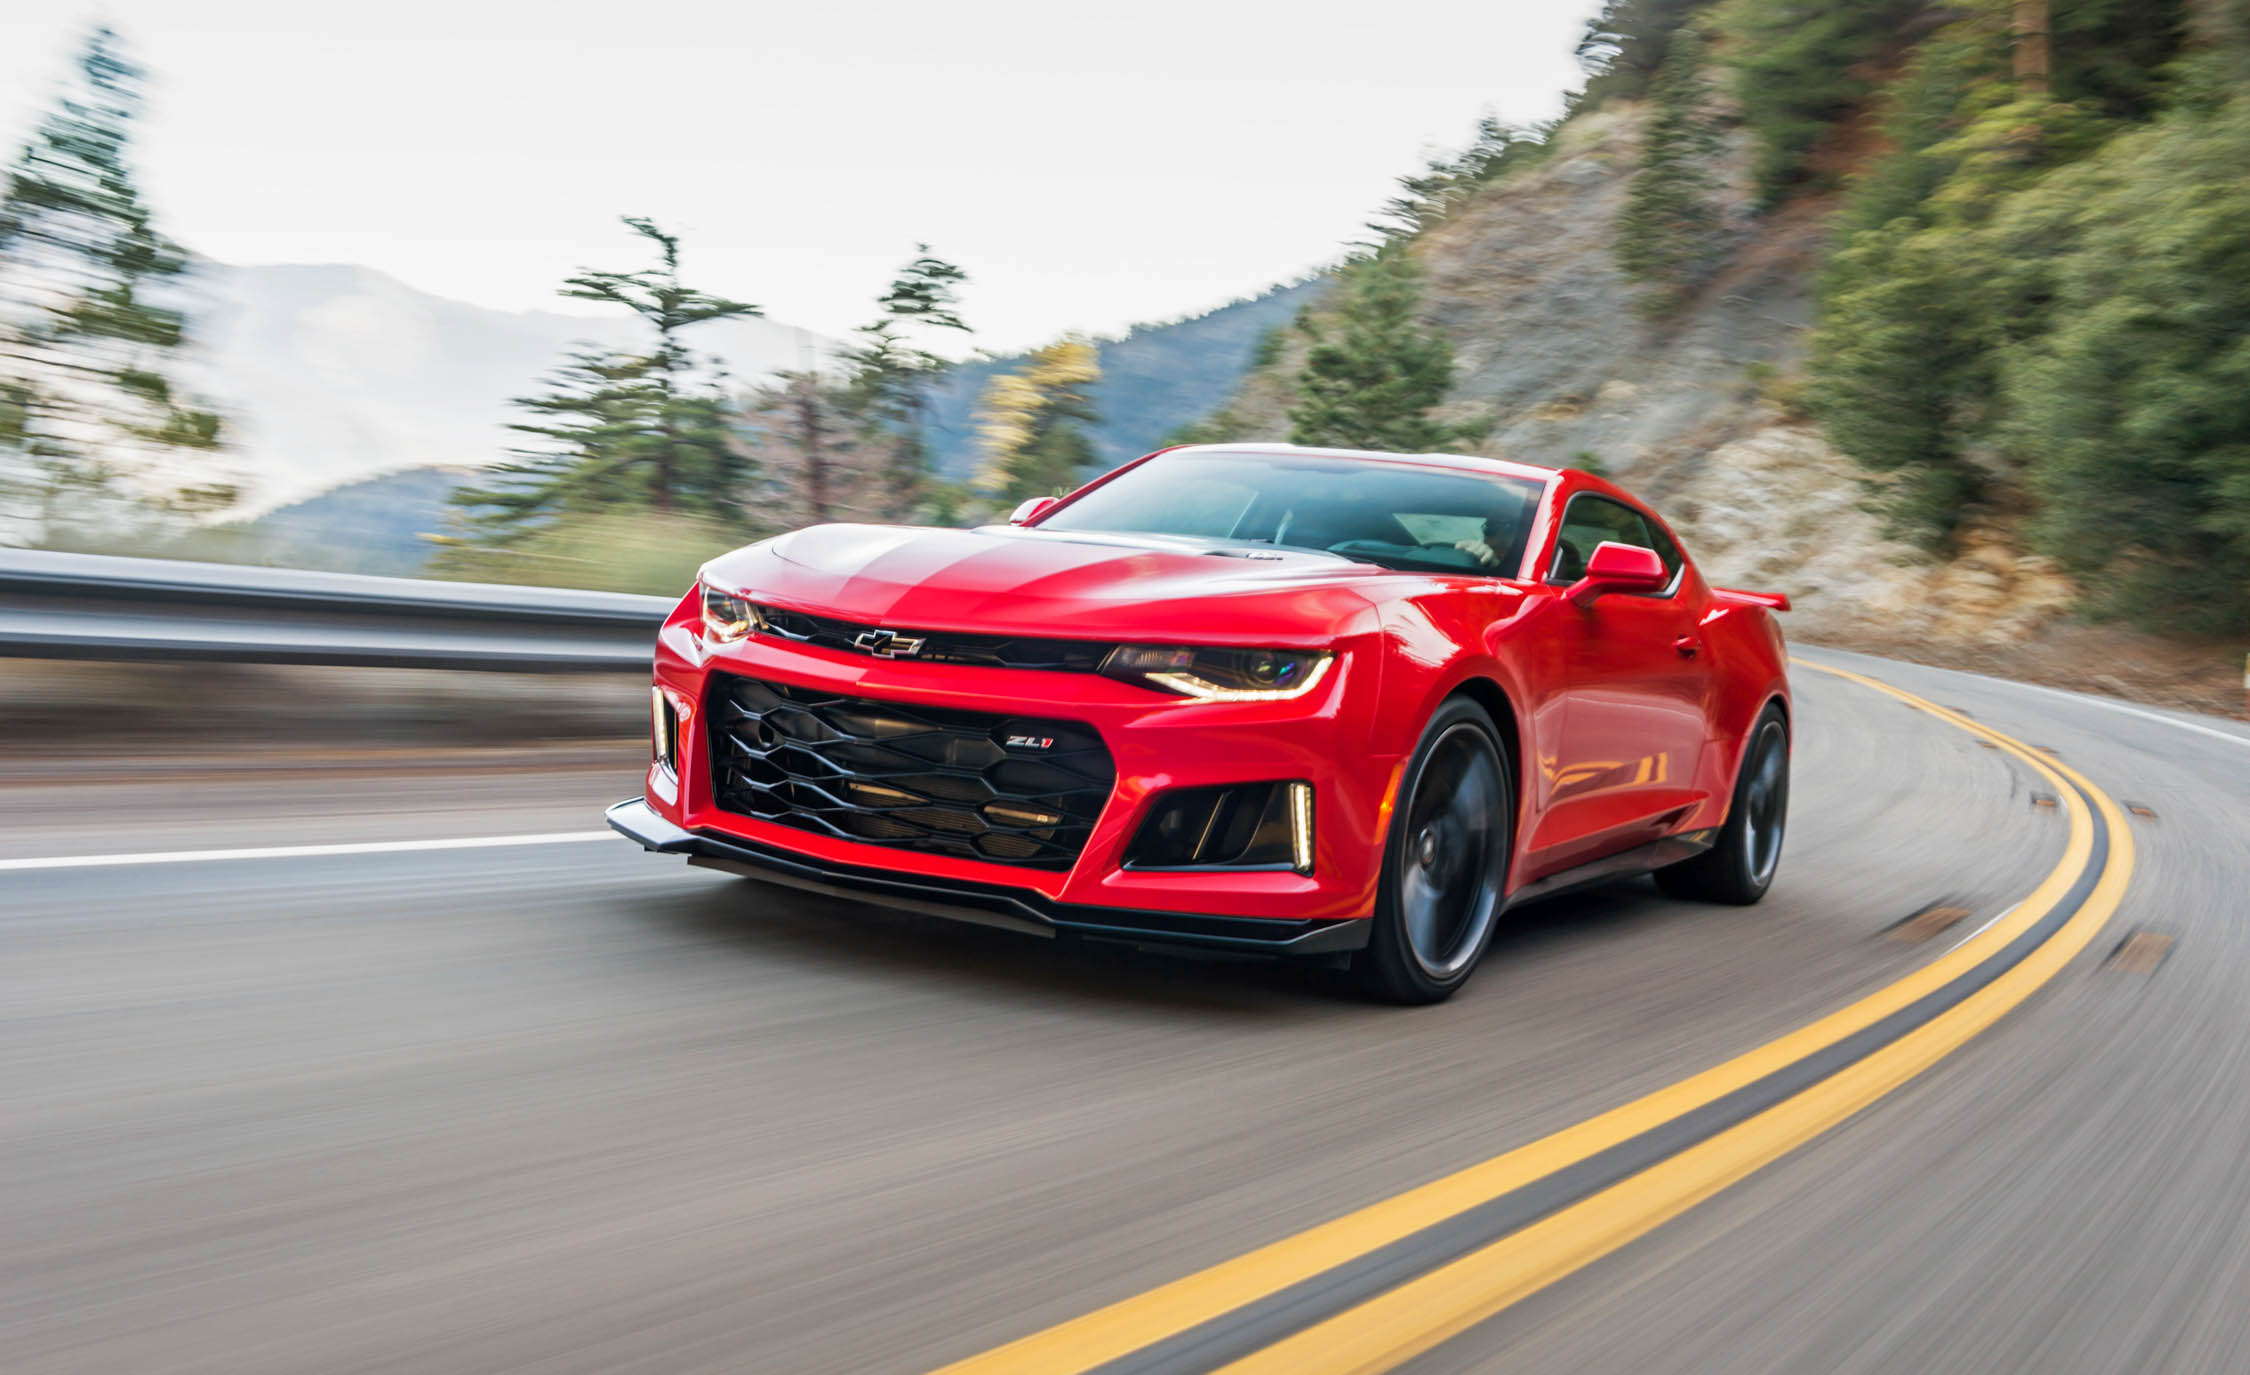 2017 Chevrolet Camaro ZL1 Red Test Drive Front And Side (Photo 35 of 62)